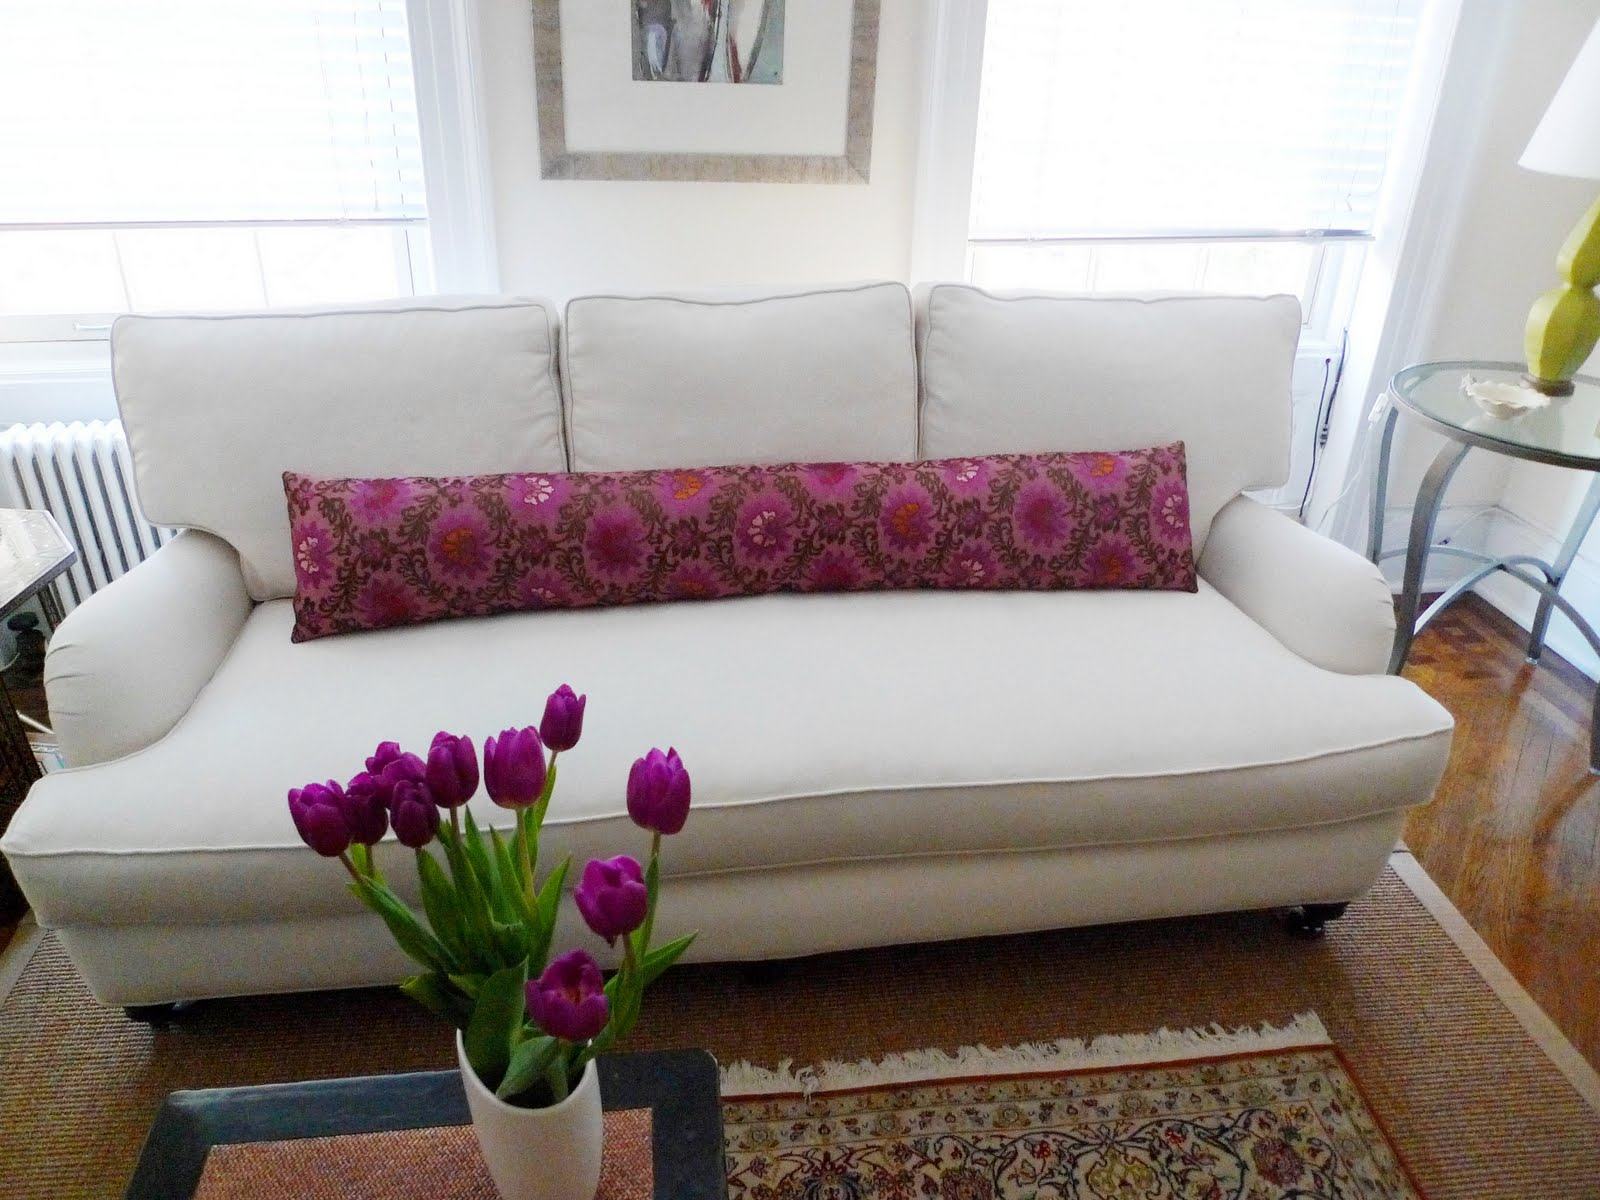 COCOCOZY: BEFORE & AFTER: MICRO MAKEOVER - ANATOMY OF A NYC SOFA REDO!